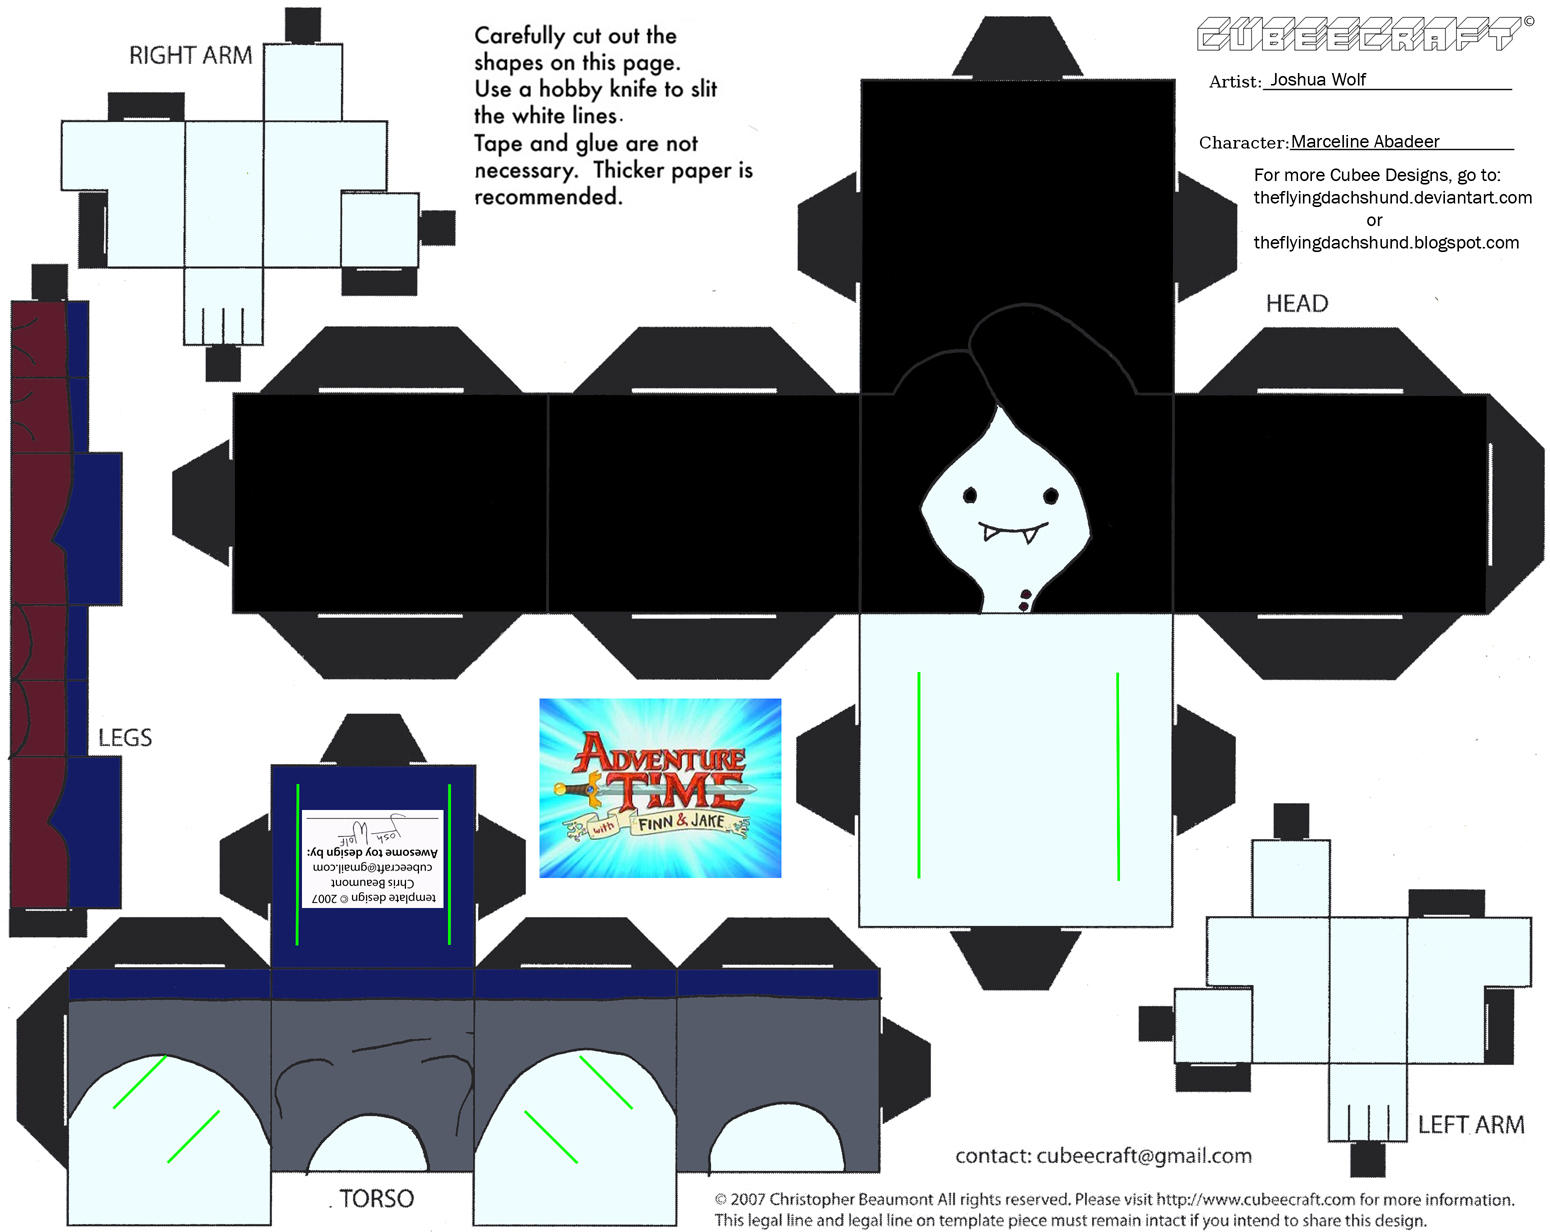 Images For > Cubeecraft Adventure Time Finn